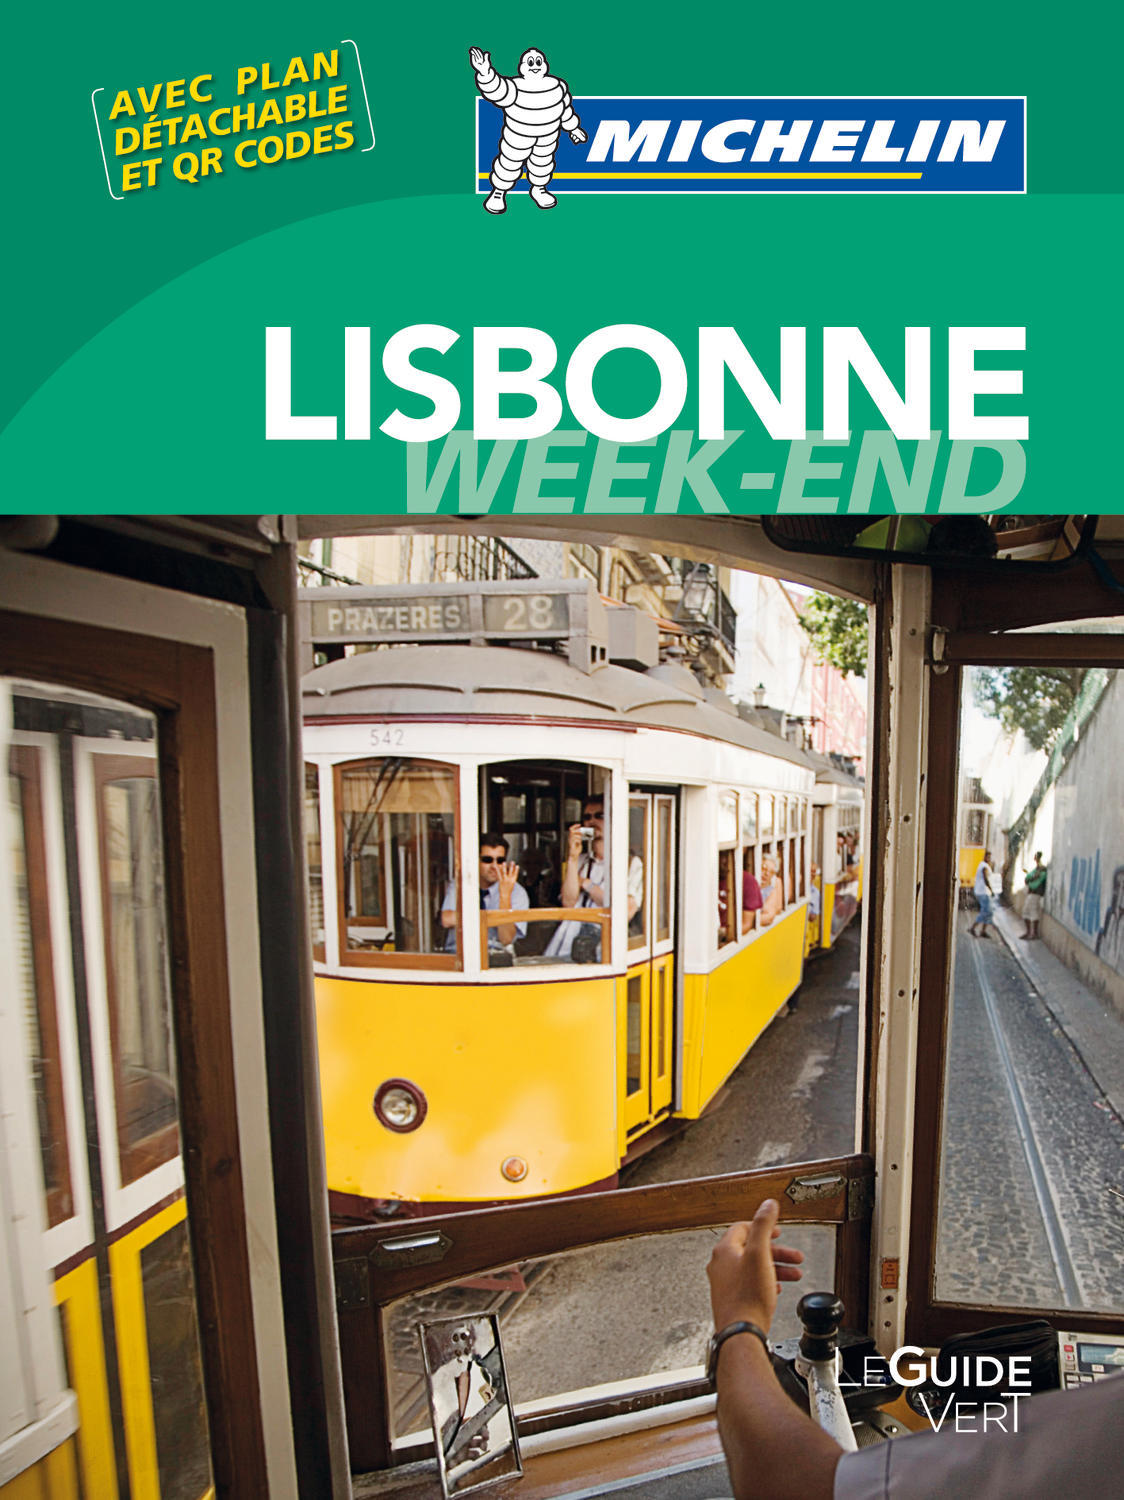 GUIDE VERT WEEK-END LISBONNE